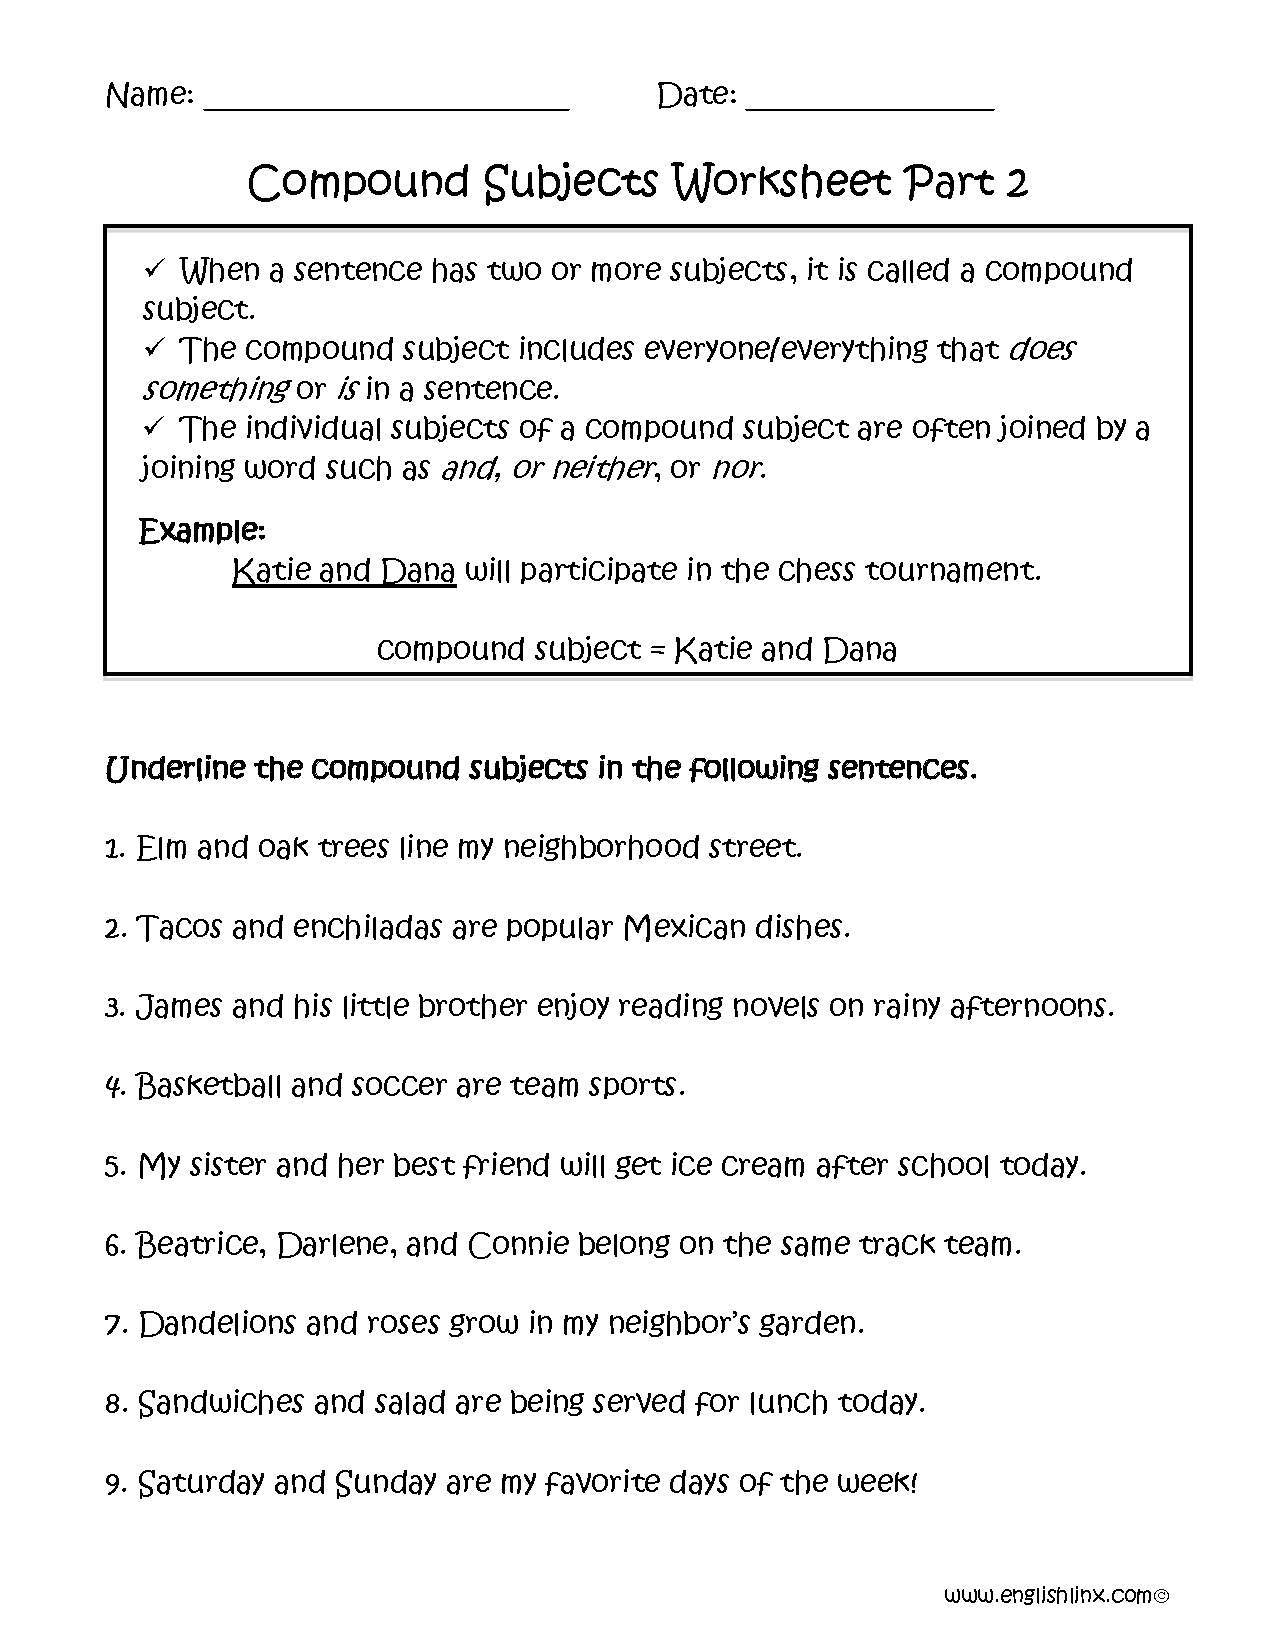 Compound Subject Worksheet Part 2